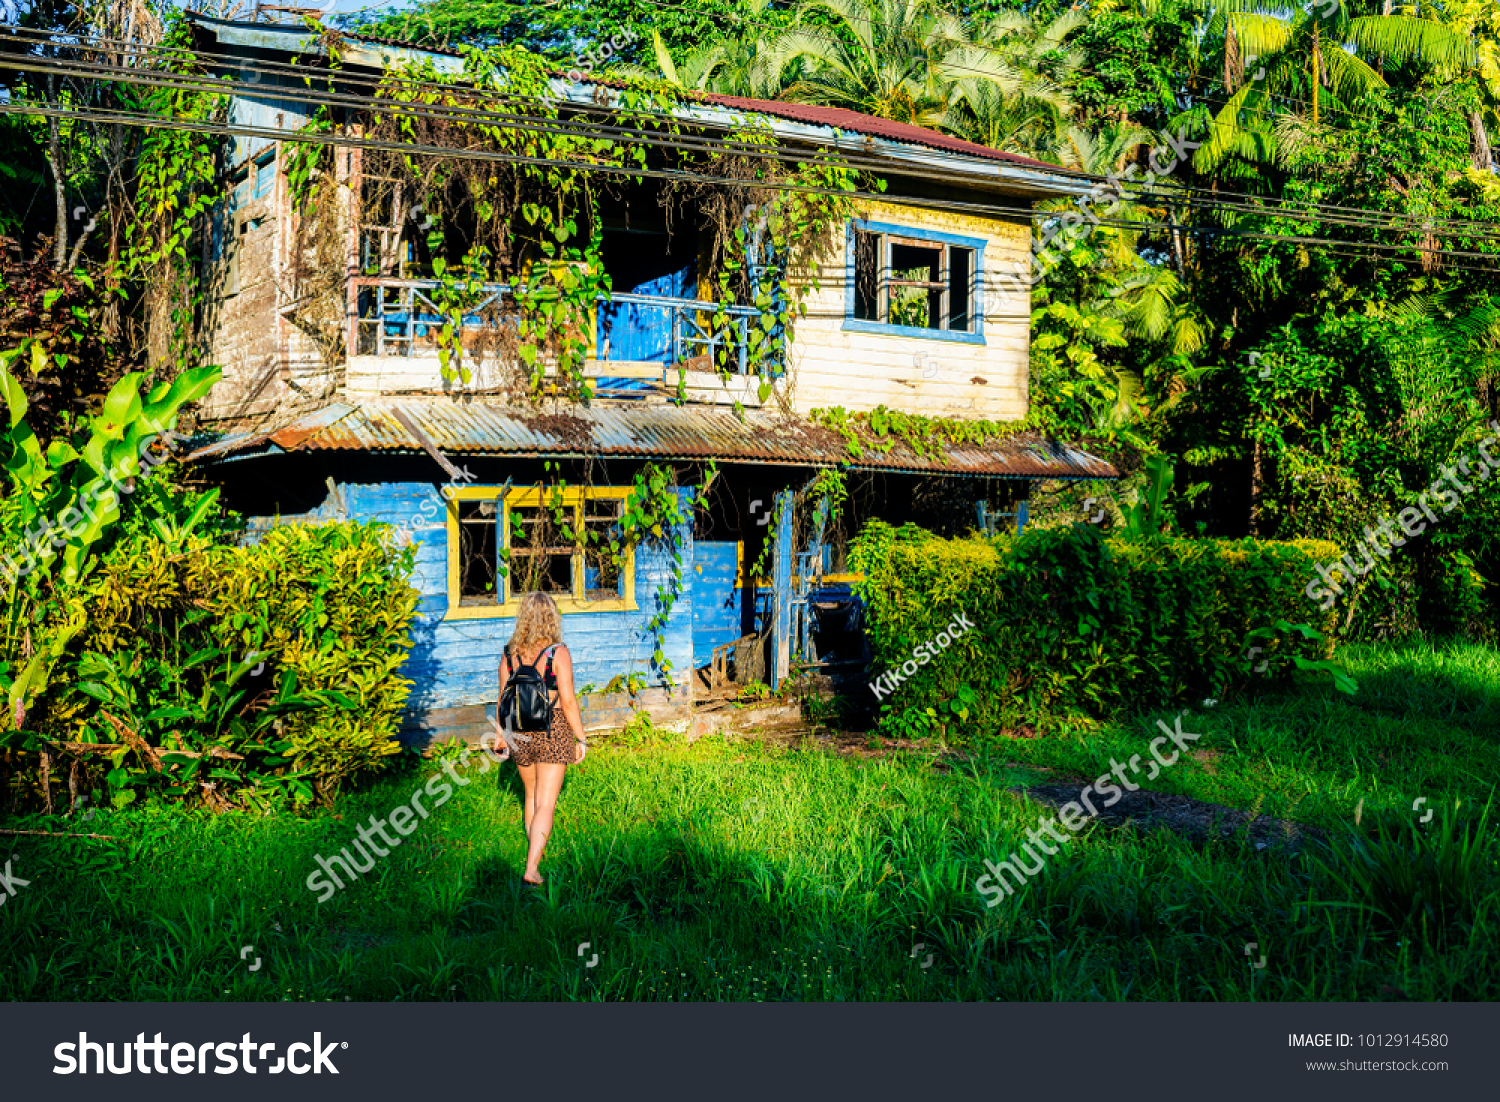 stock-photo-woman-in-front-of-abandoned-house-in-cahuita-puerto-limon-costa-rica-1012914580.jpg